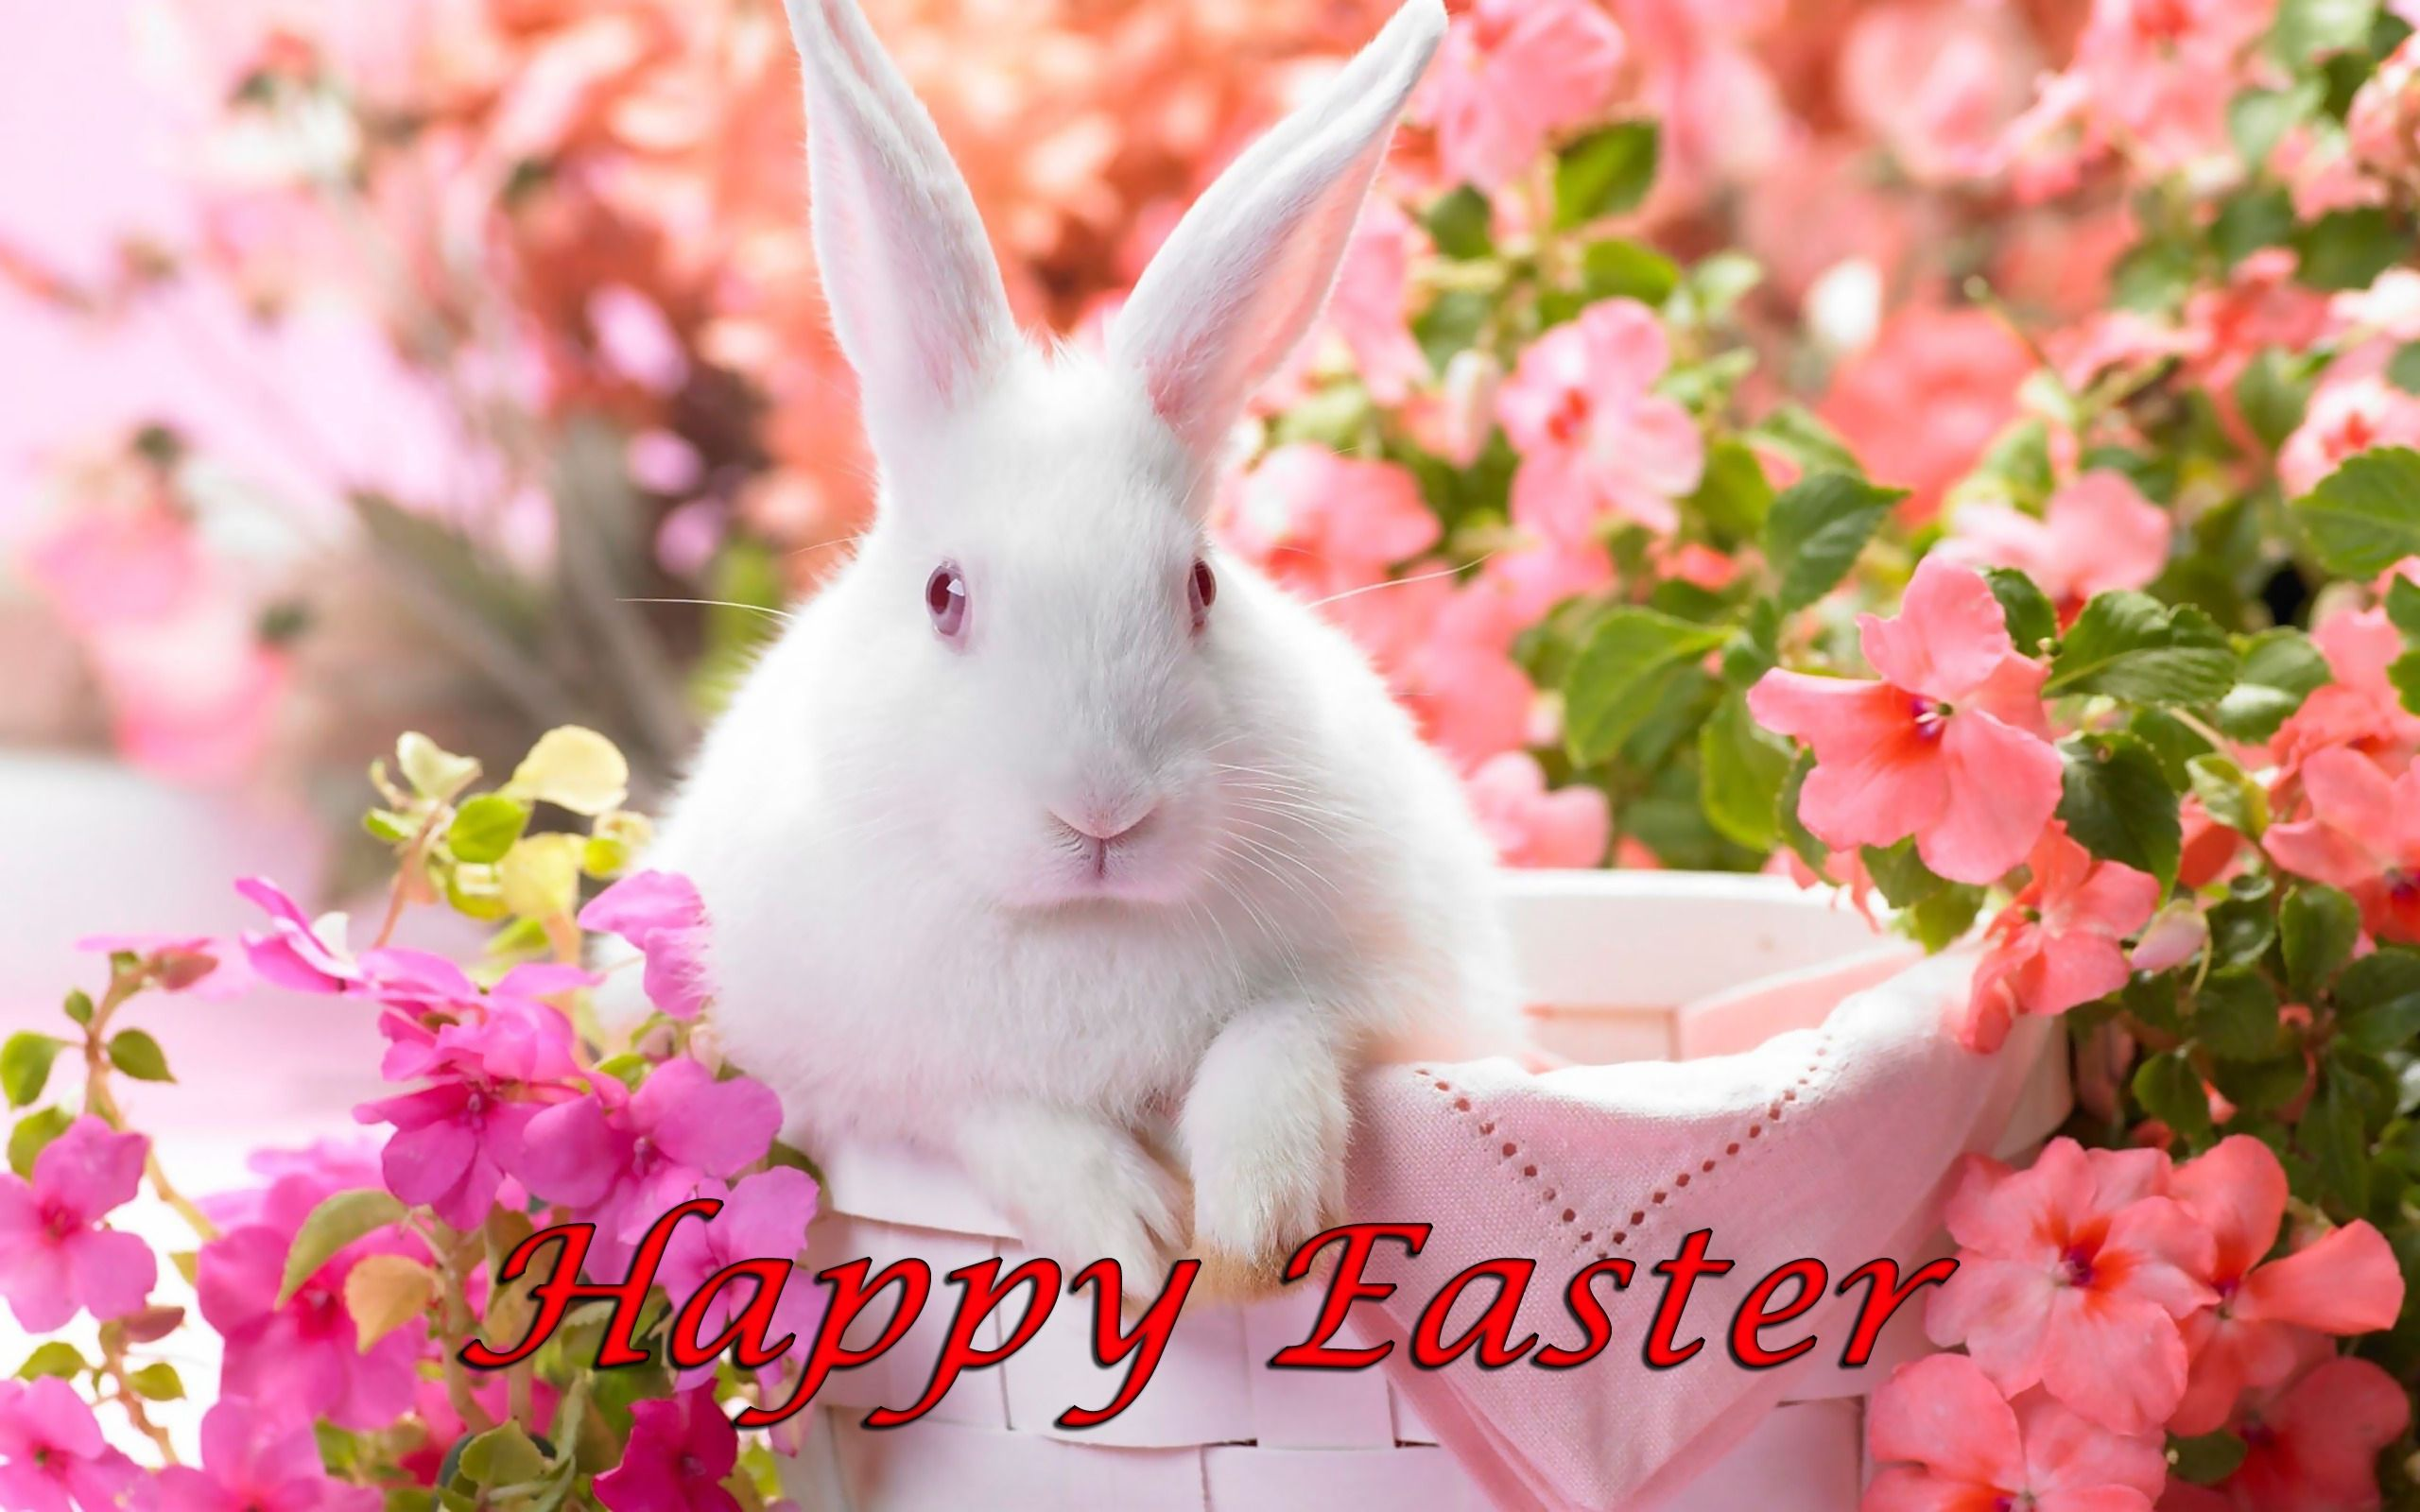 2560x1600 Happy Easter, White Bunny in Basket Surrounded by Flowers ...